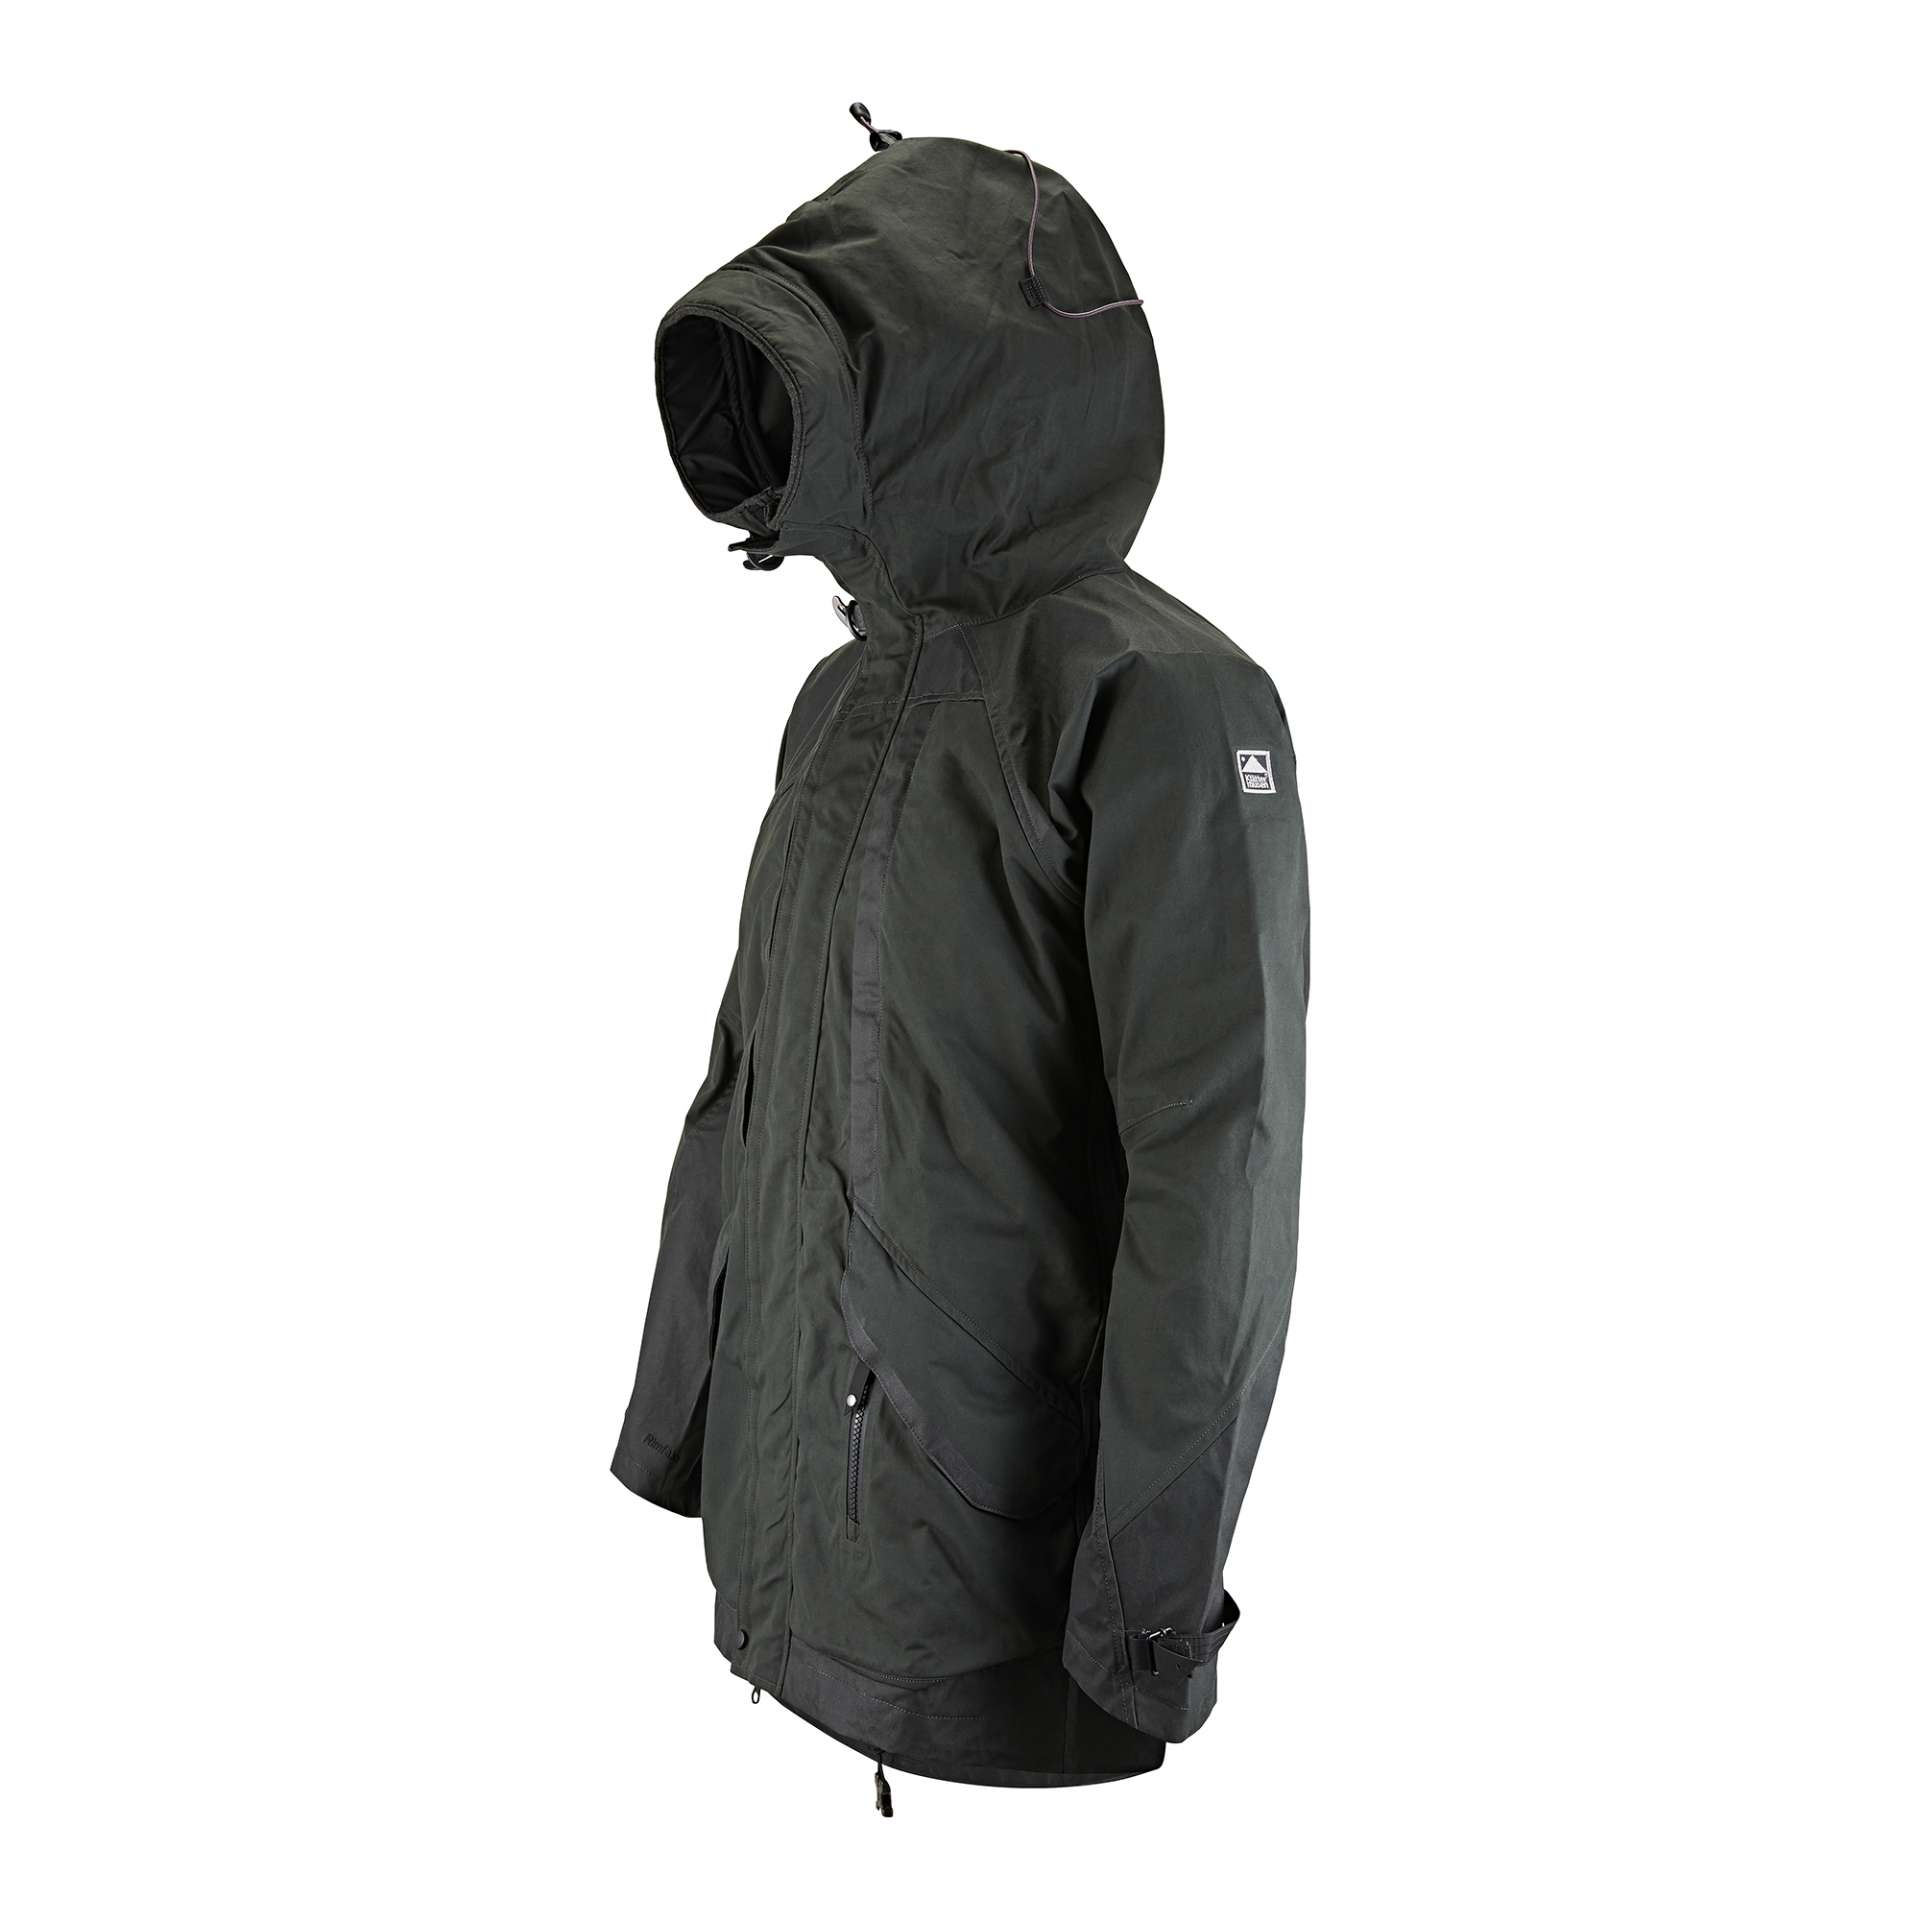 Product image of Men's Rimfaxe 2.0 Jacket